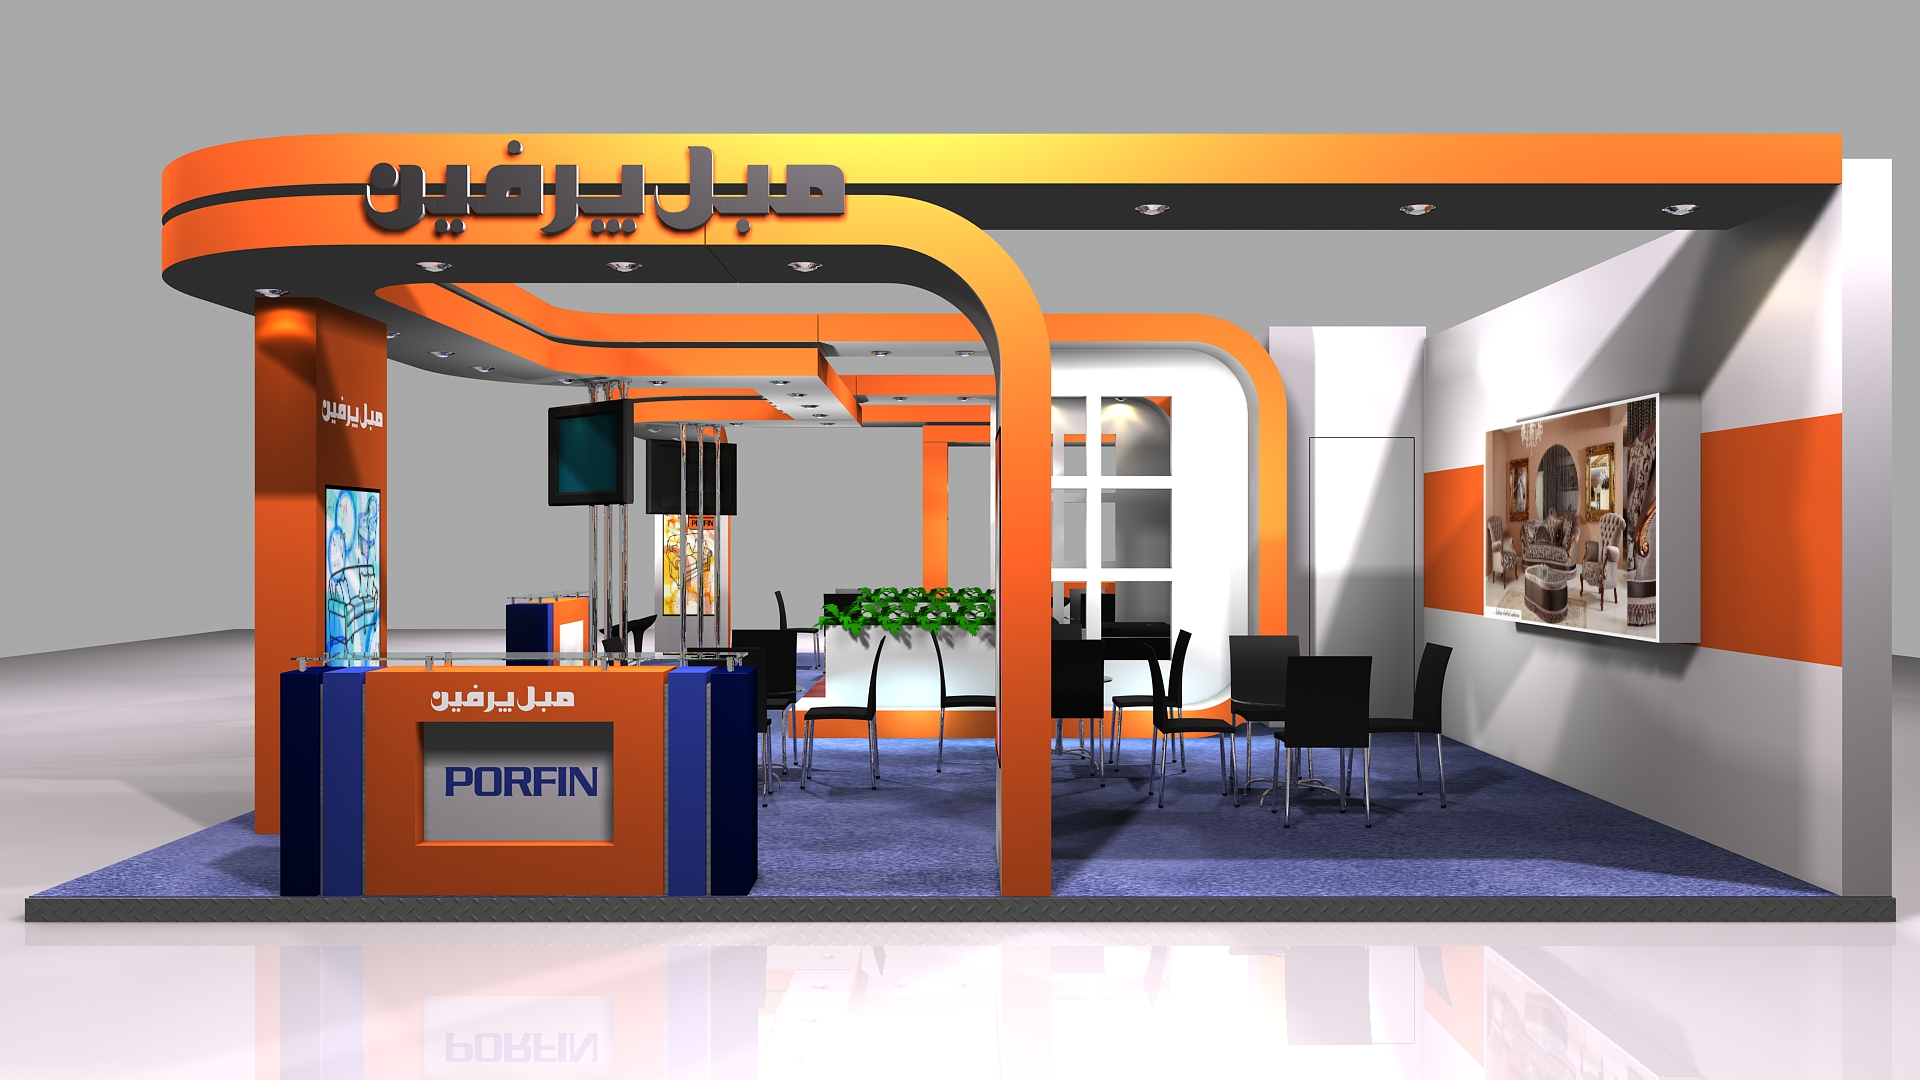 Exhibition Stall Image : Porfin exhibition stall design by reza nasser